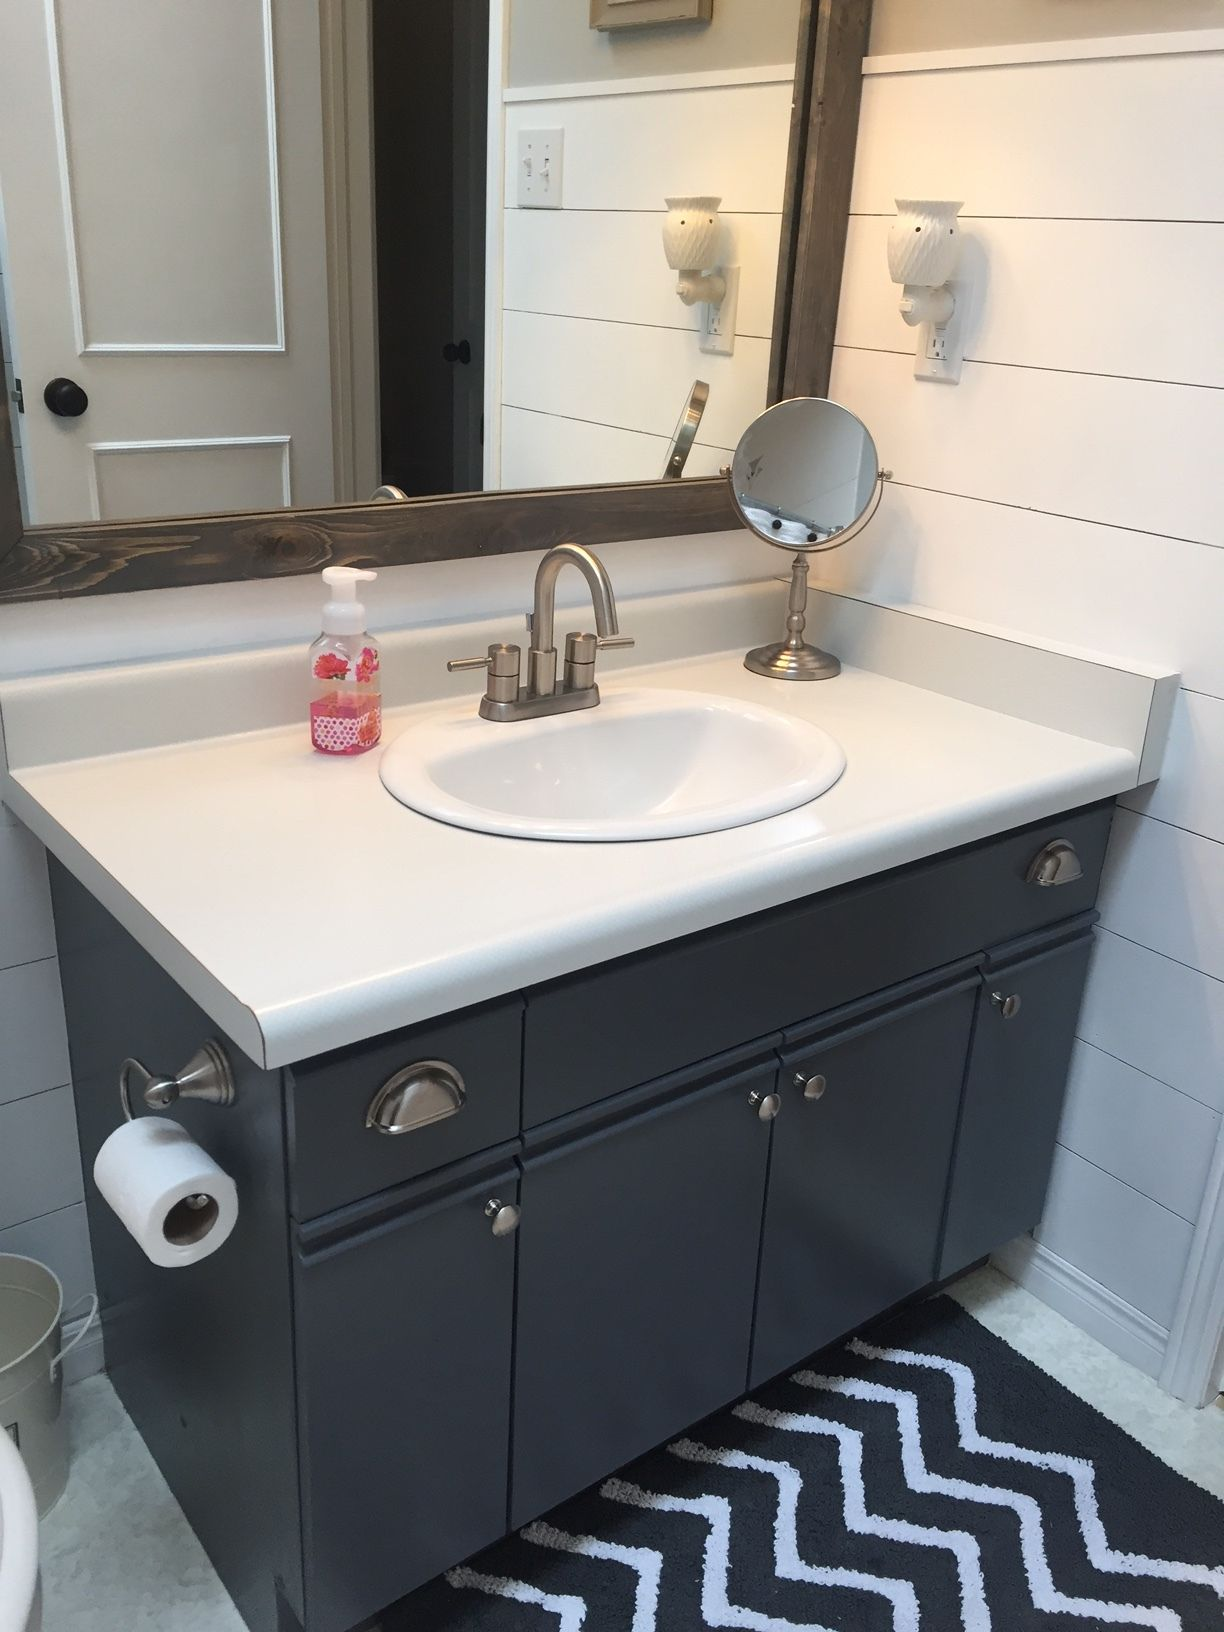 Bathroom Update How To Paint Laminate Cabinets The Penny